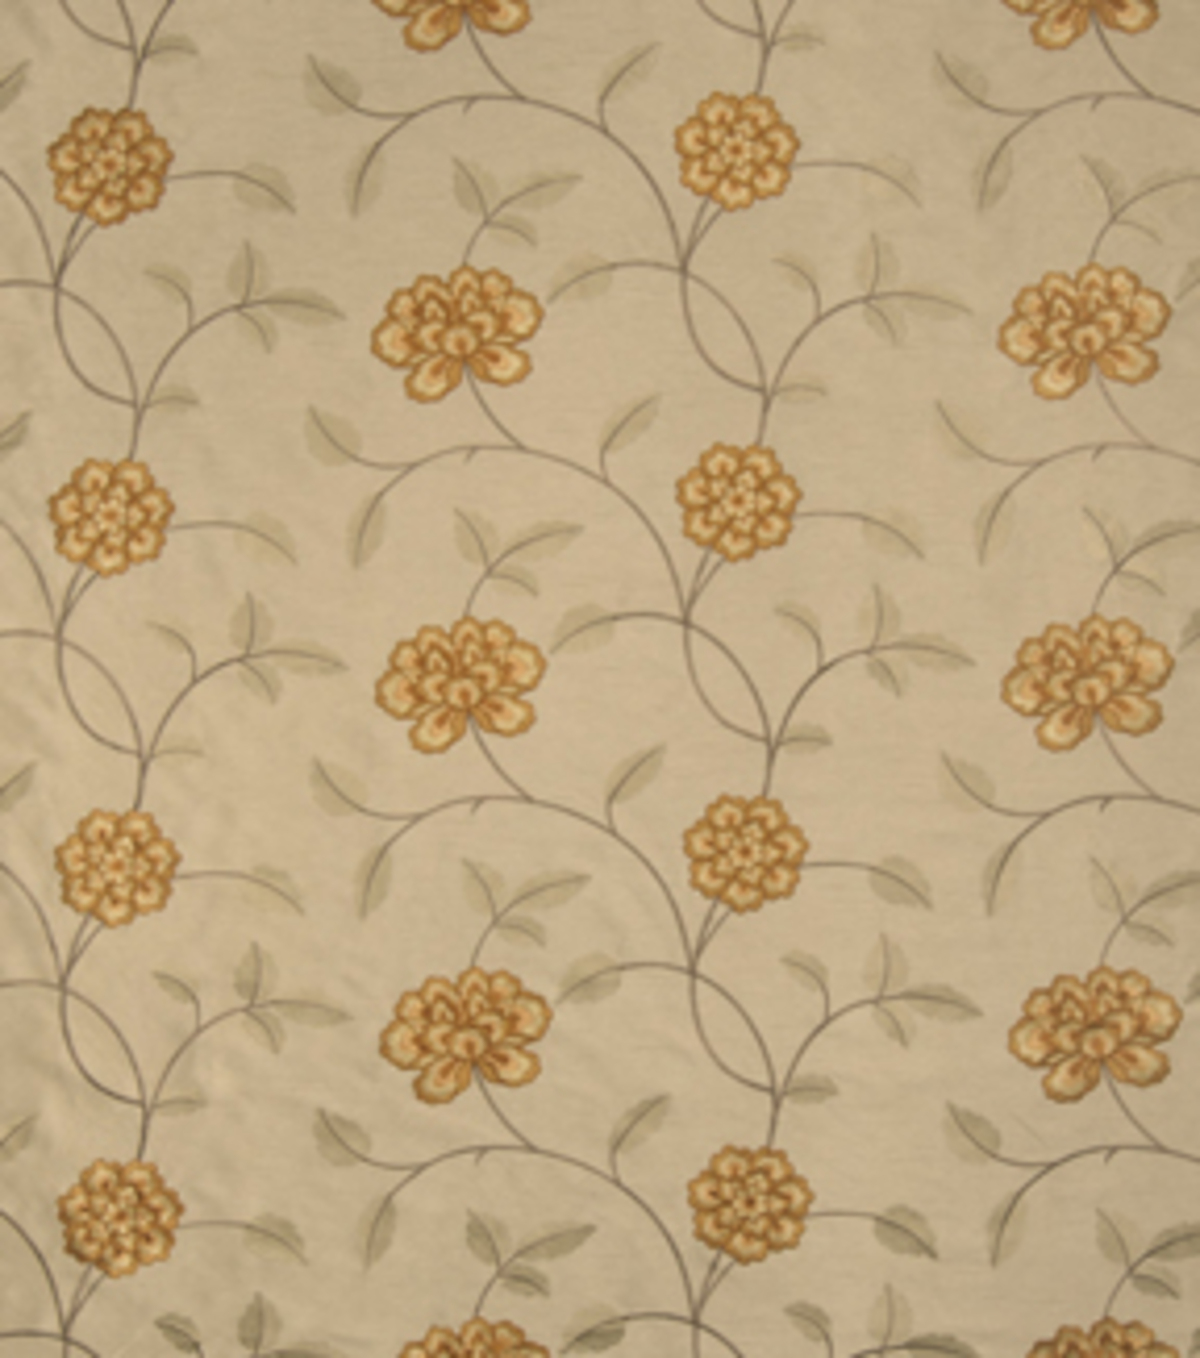 Home Decor 8\u0022x8\u0022 Fabric Swatch-Eaton Square Bramble Persimmon